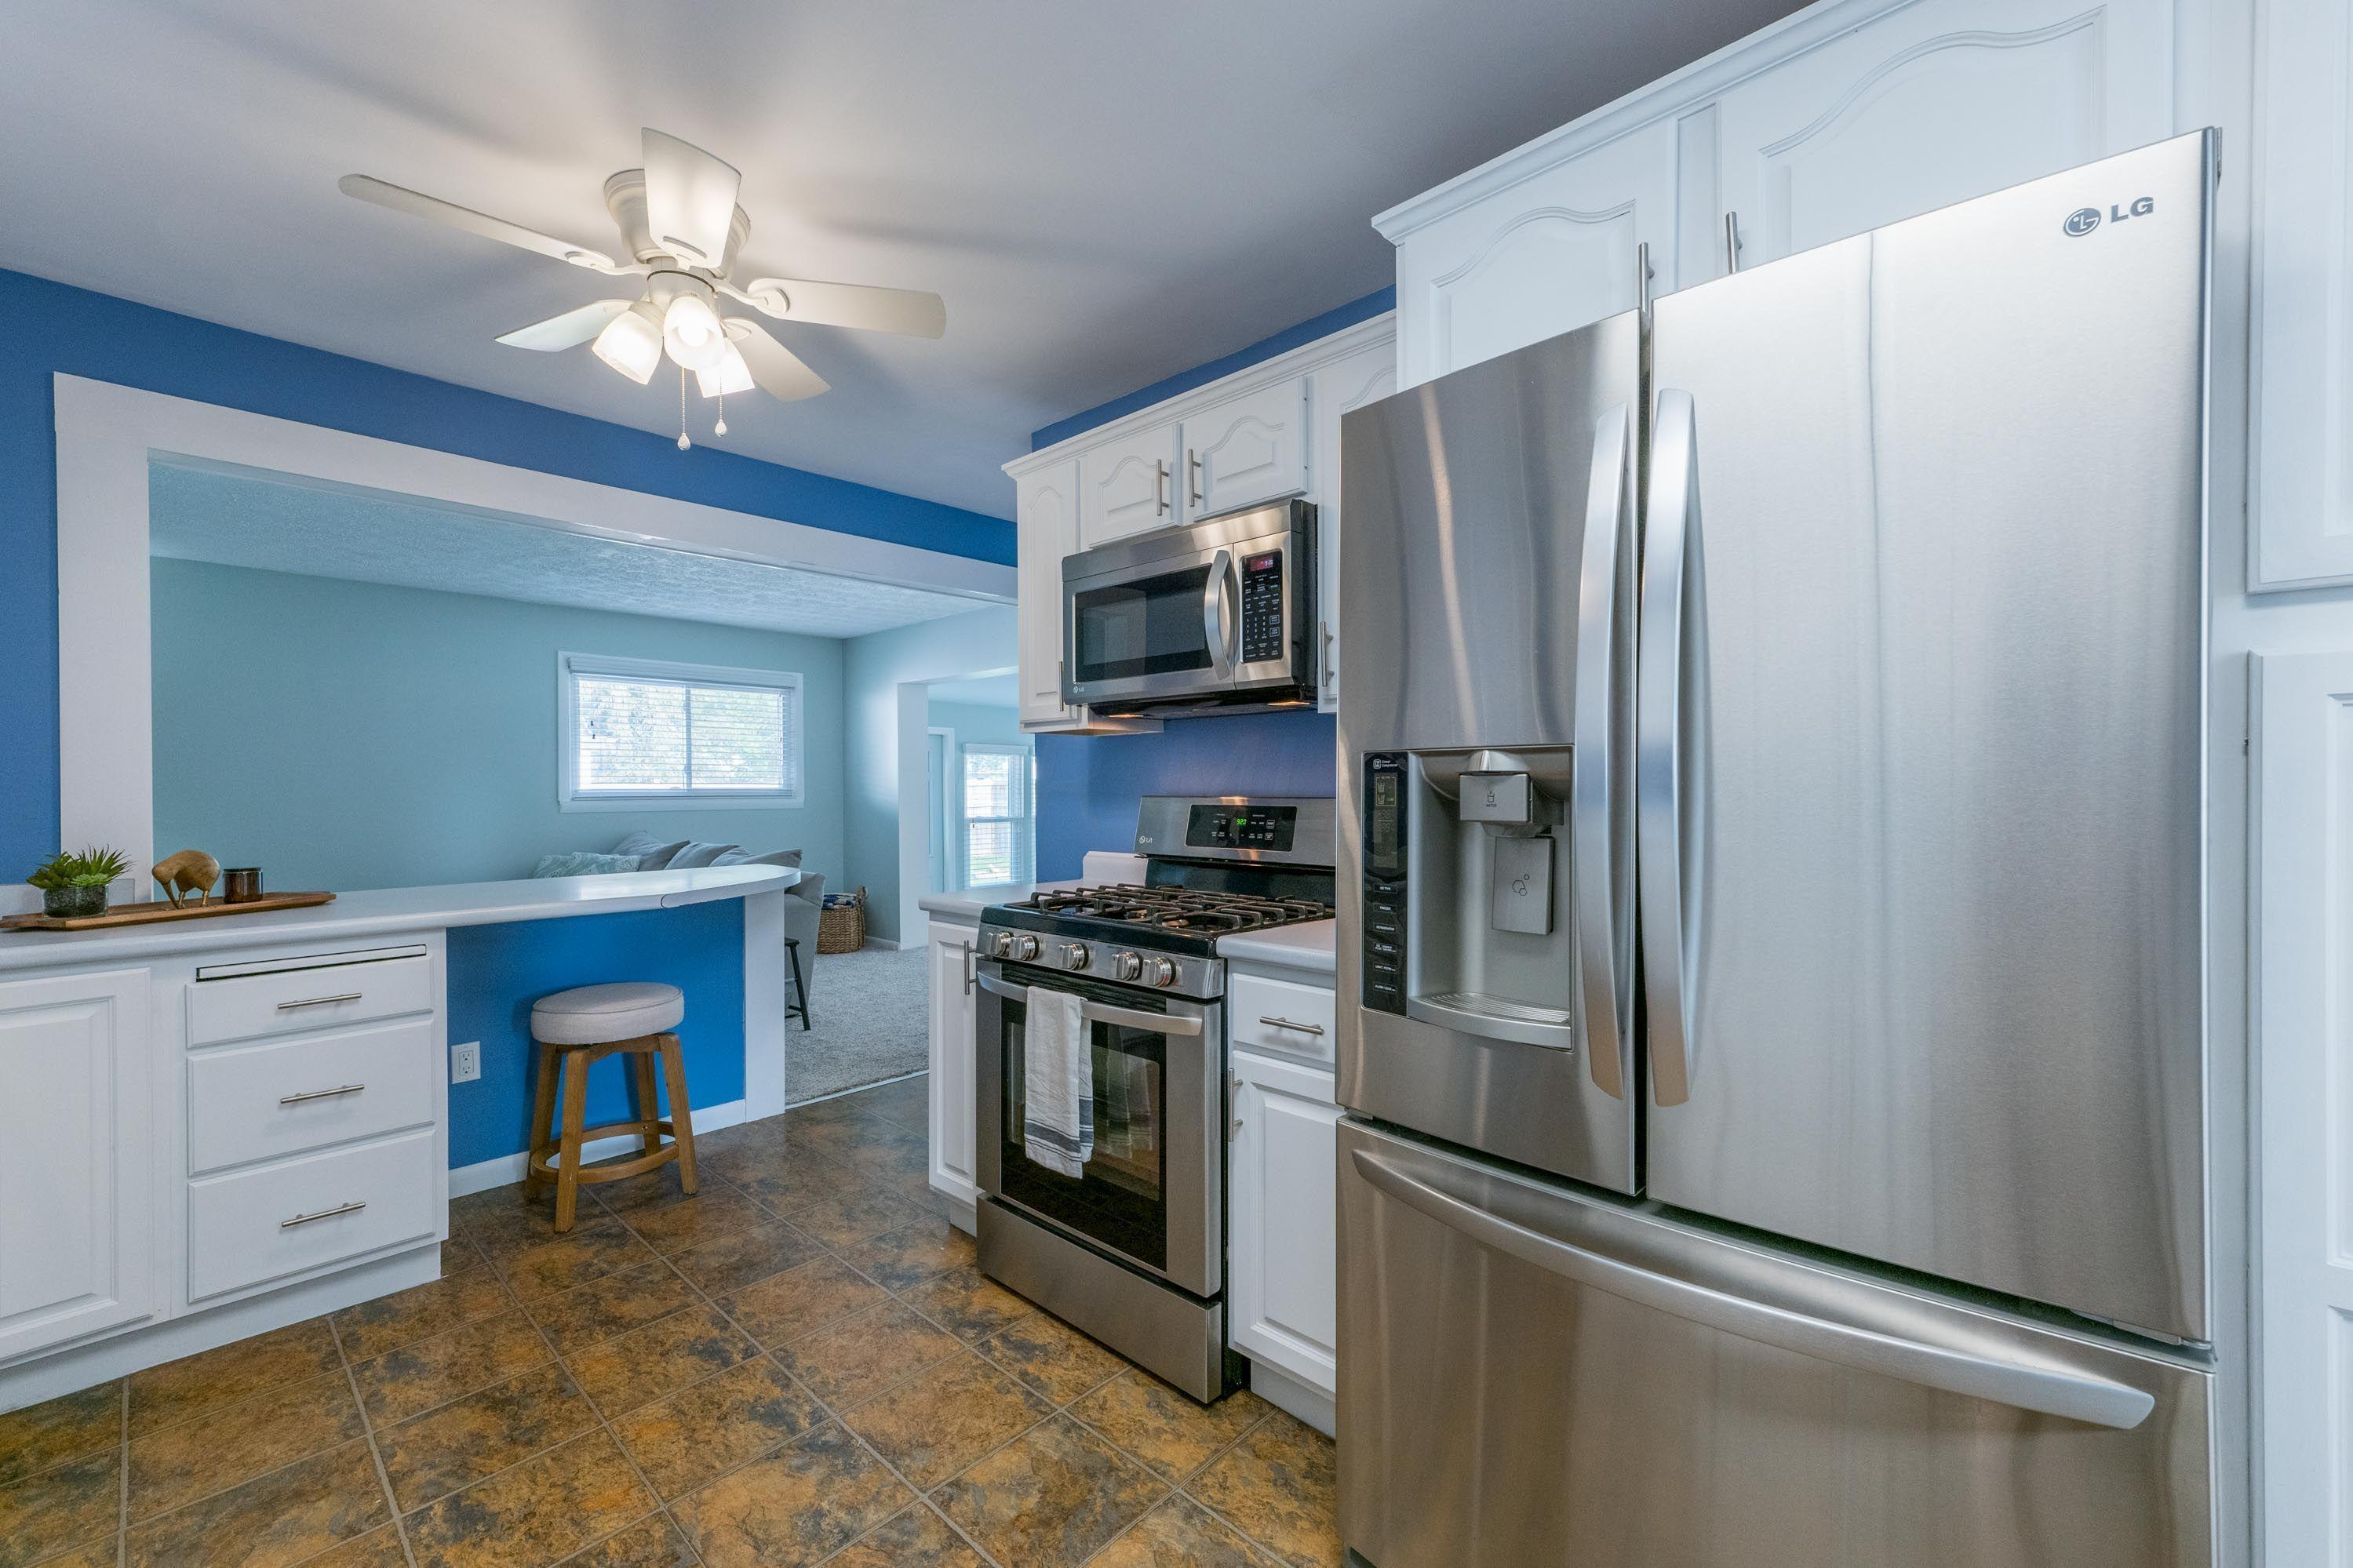 High end stainless appliances